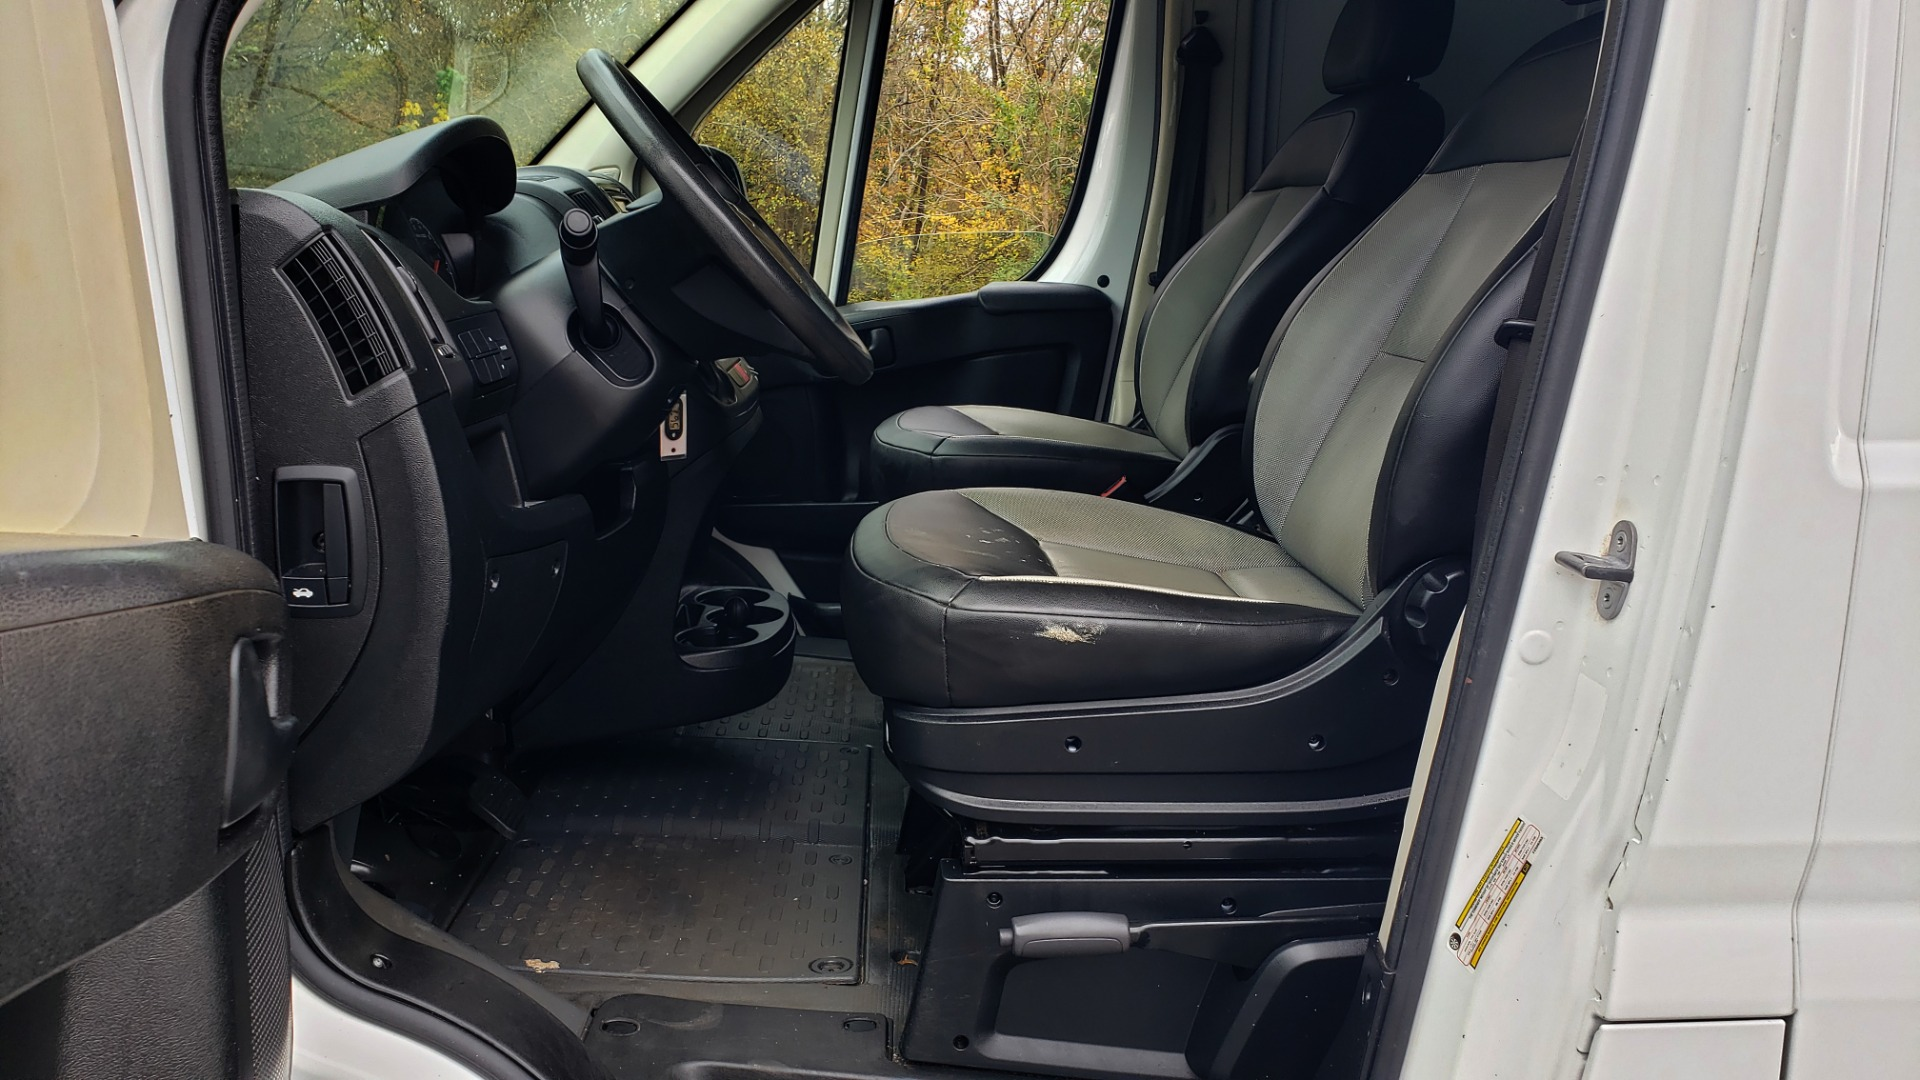 Used 2015 Ram PROMASTER CARGO VAN 136-INCH WB / LOW ROOF / LADDER RACK / INSIDE RACKS for sale $16,995 at Formula Imports in Charlotte NC 28227 32